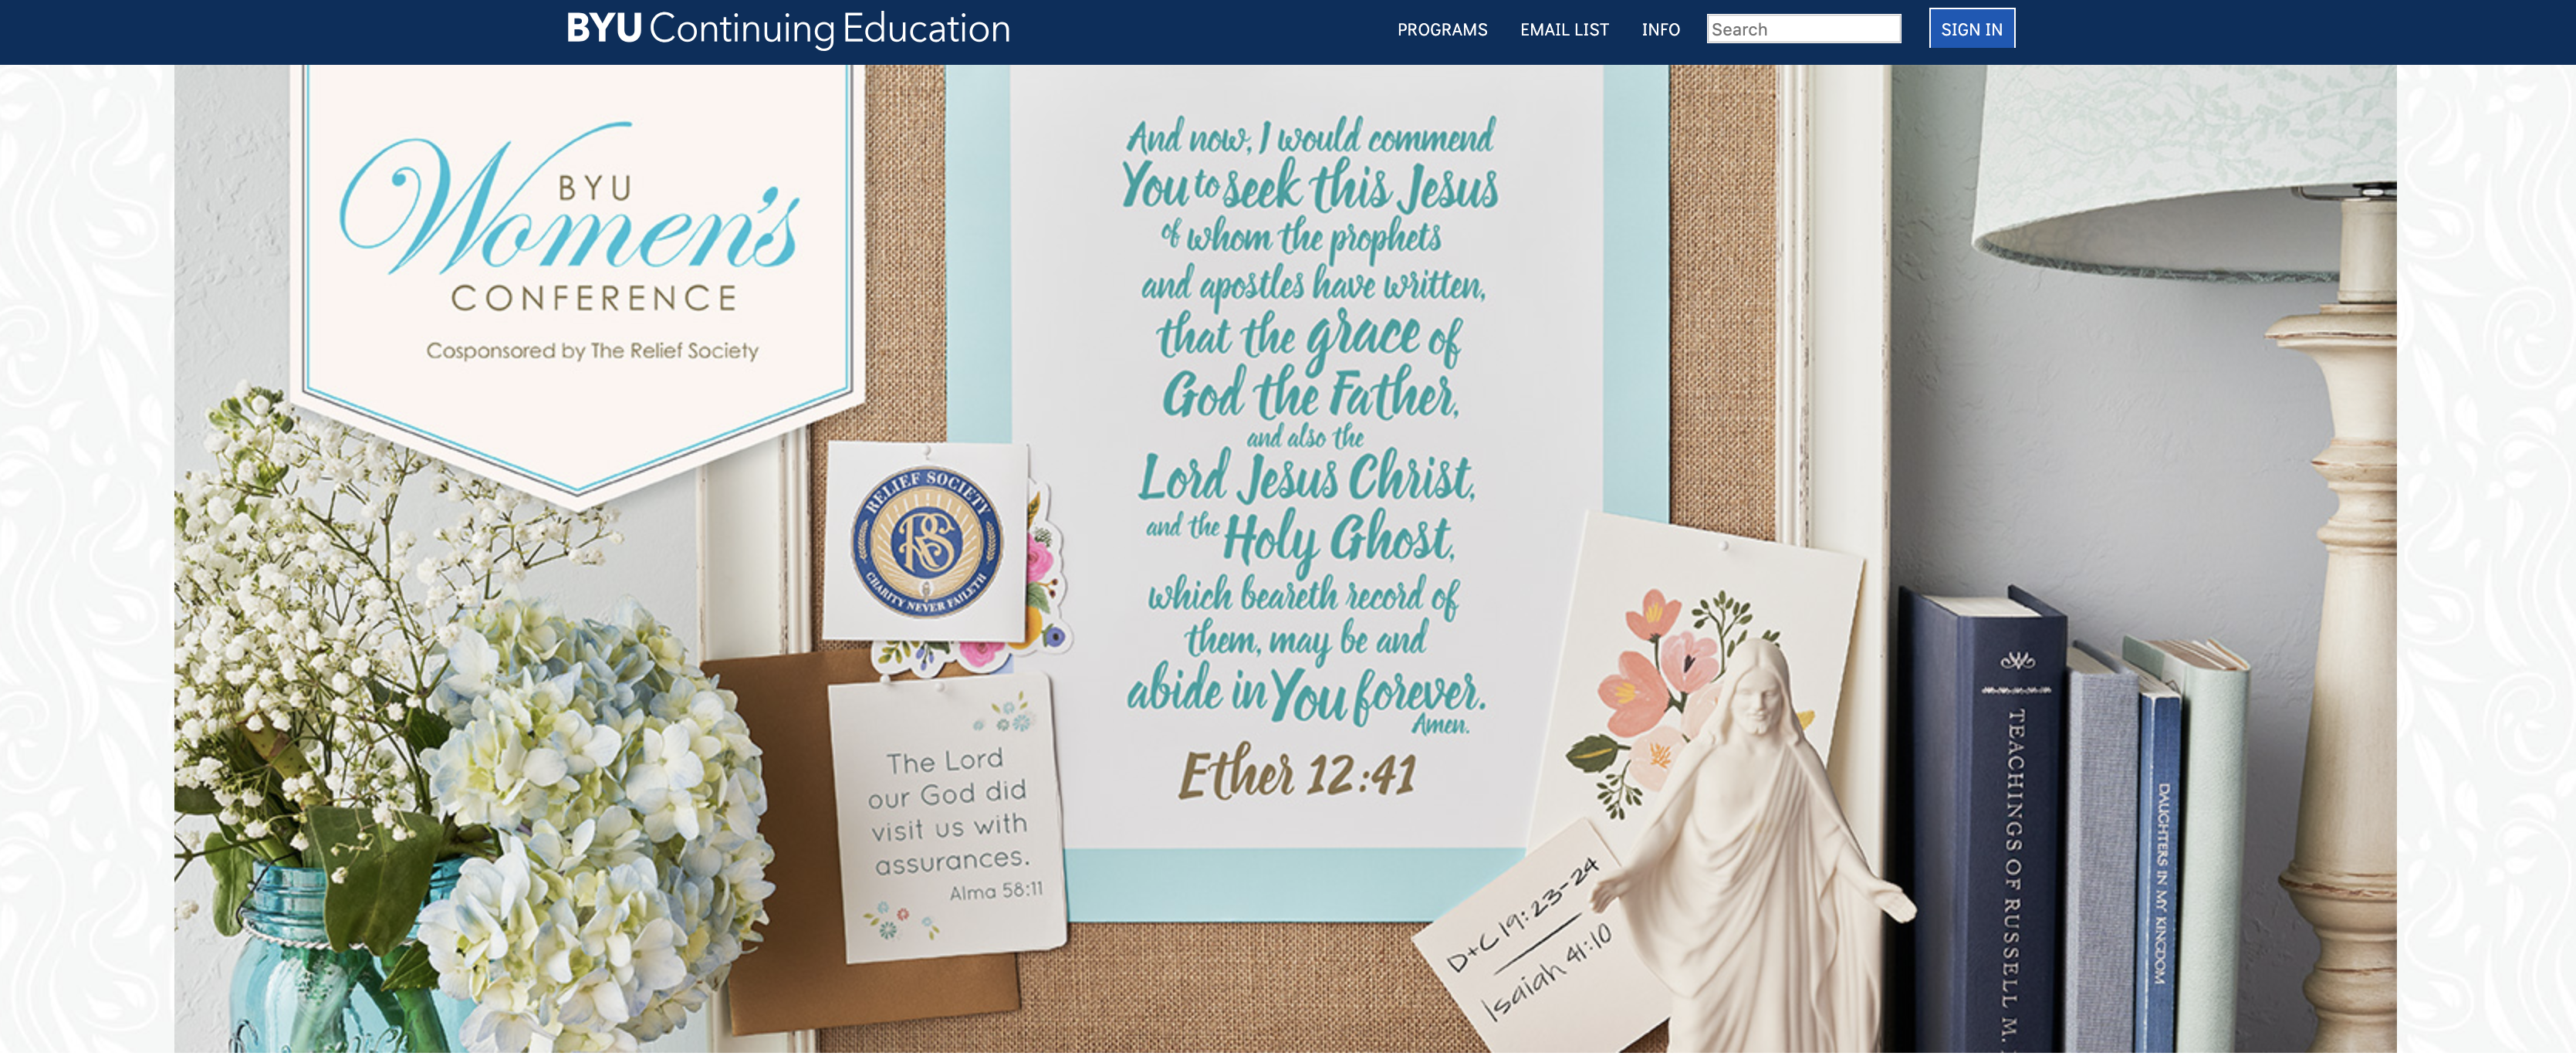 "The theme of BYU Women's Conference for 2019 is Ether 12:41: ""And now, I would commend you to seek this Jesus of whom the prophets and apostles have written, that the grace of God the Father, and also the Lord Jesus Christ, and the Holy Ghost, which beareth record of them, may be and abide in you forever. Amen."""